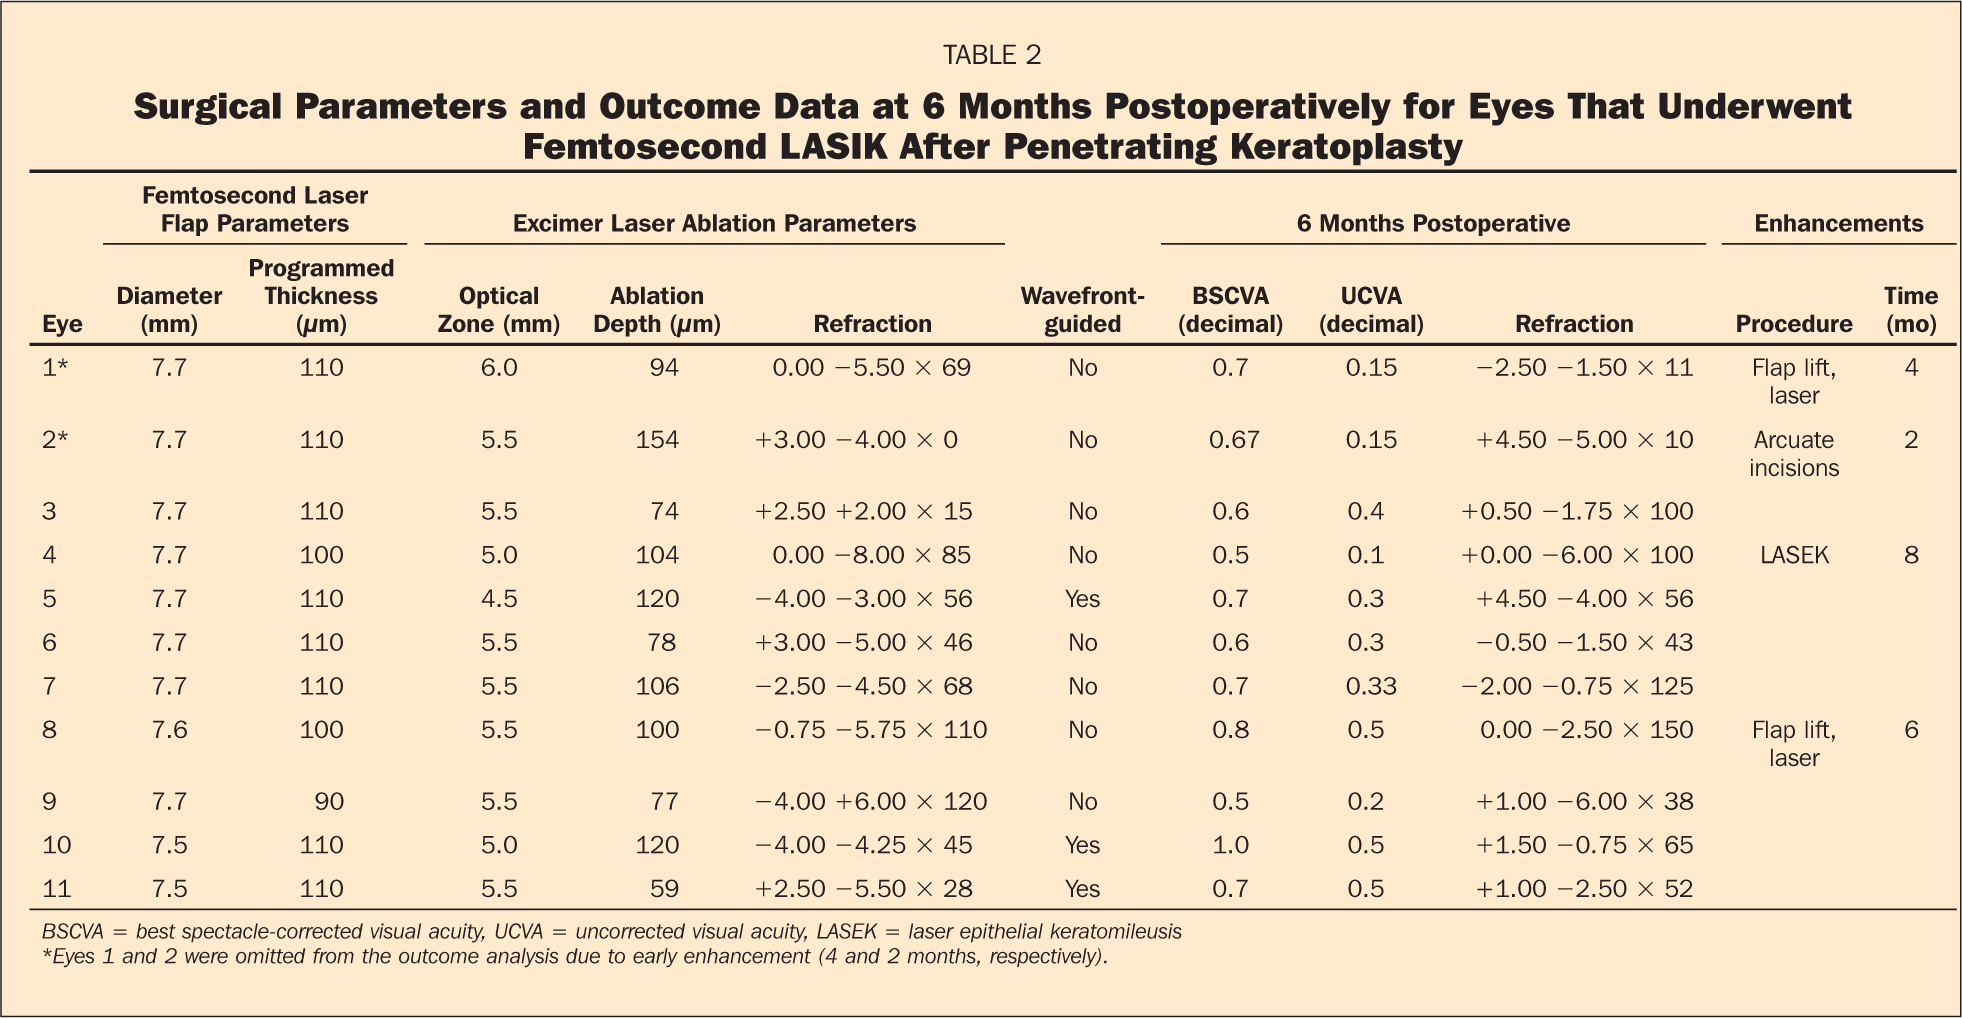 Surgical Parameters and Outcome Data at 6 Months Postoperatively for Eyes that Underwent Femtosecond LASIK After Penetrating Keratoplasty